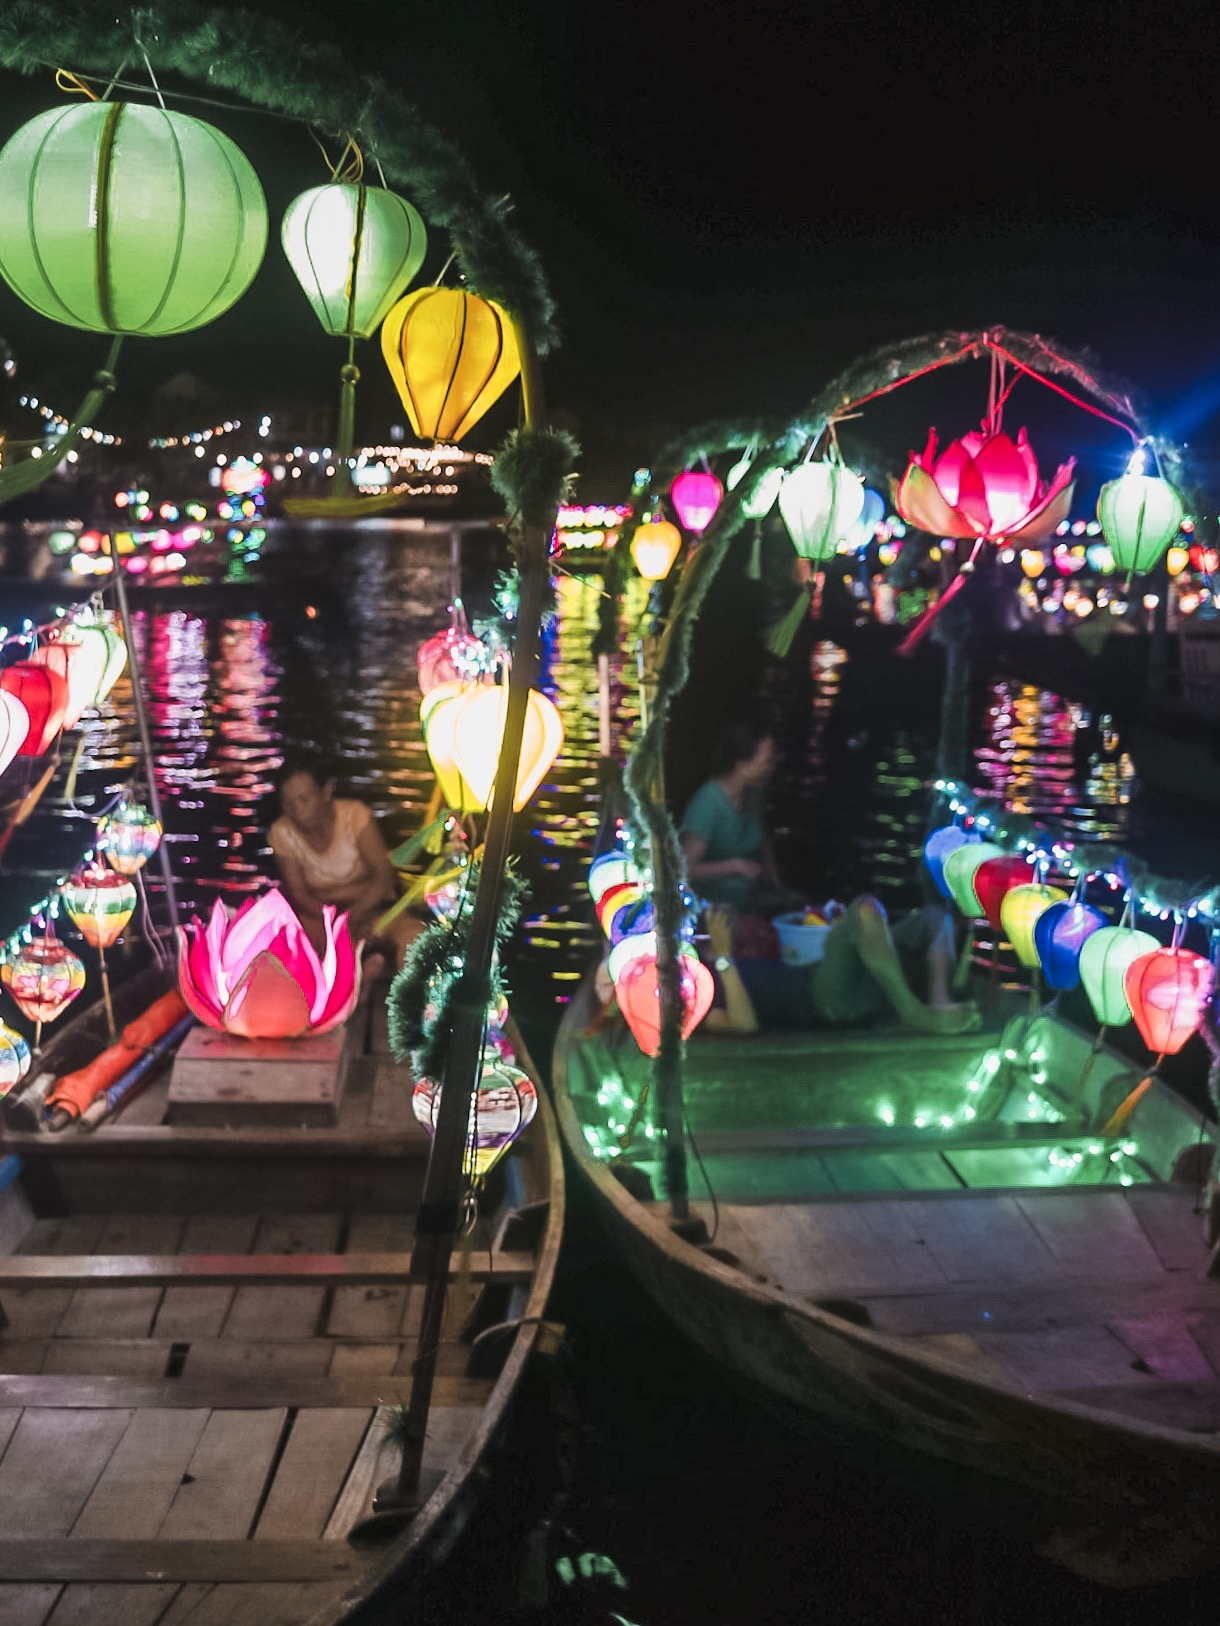 Illustrated by Sade - Lanterns on the boats of Hoi An, Vietnam